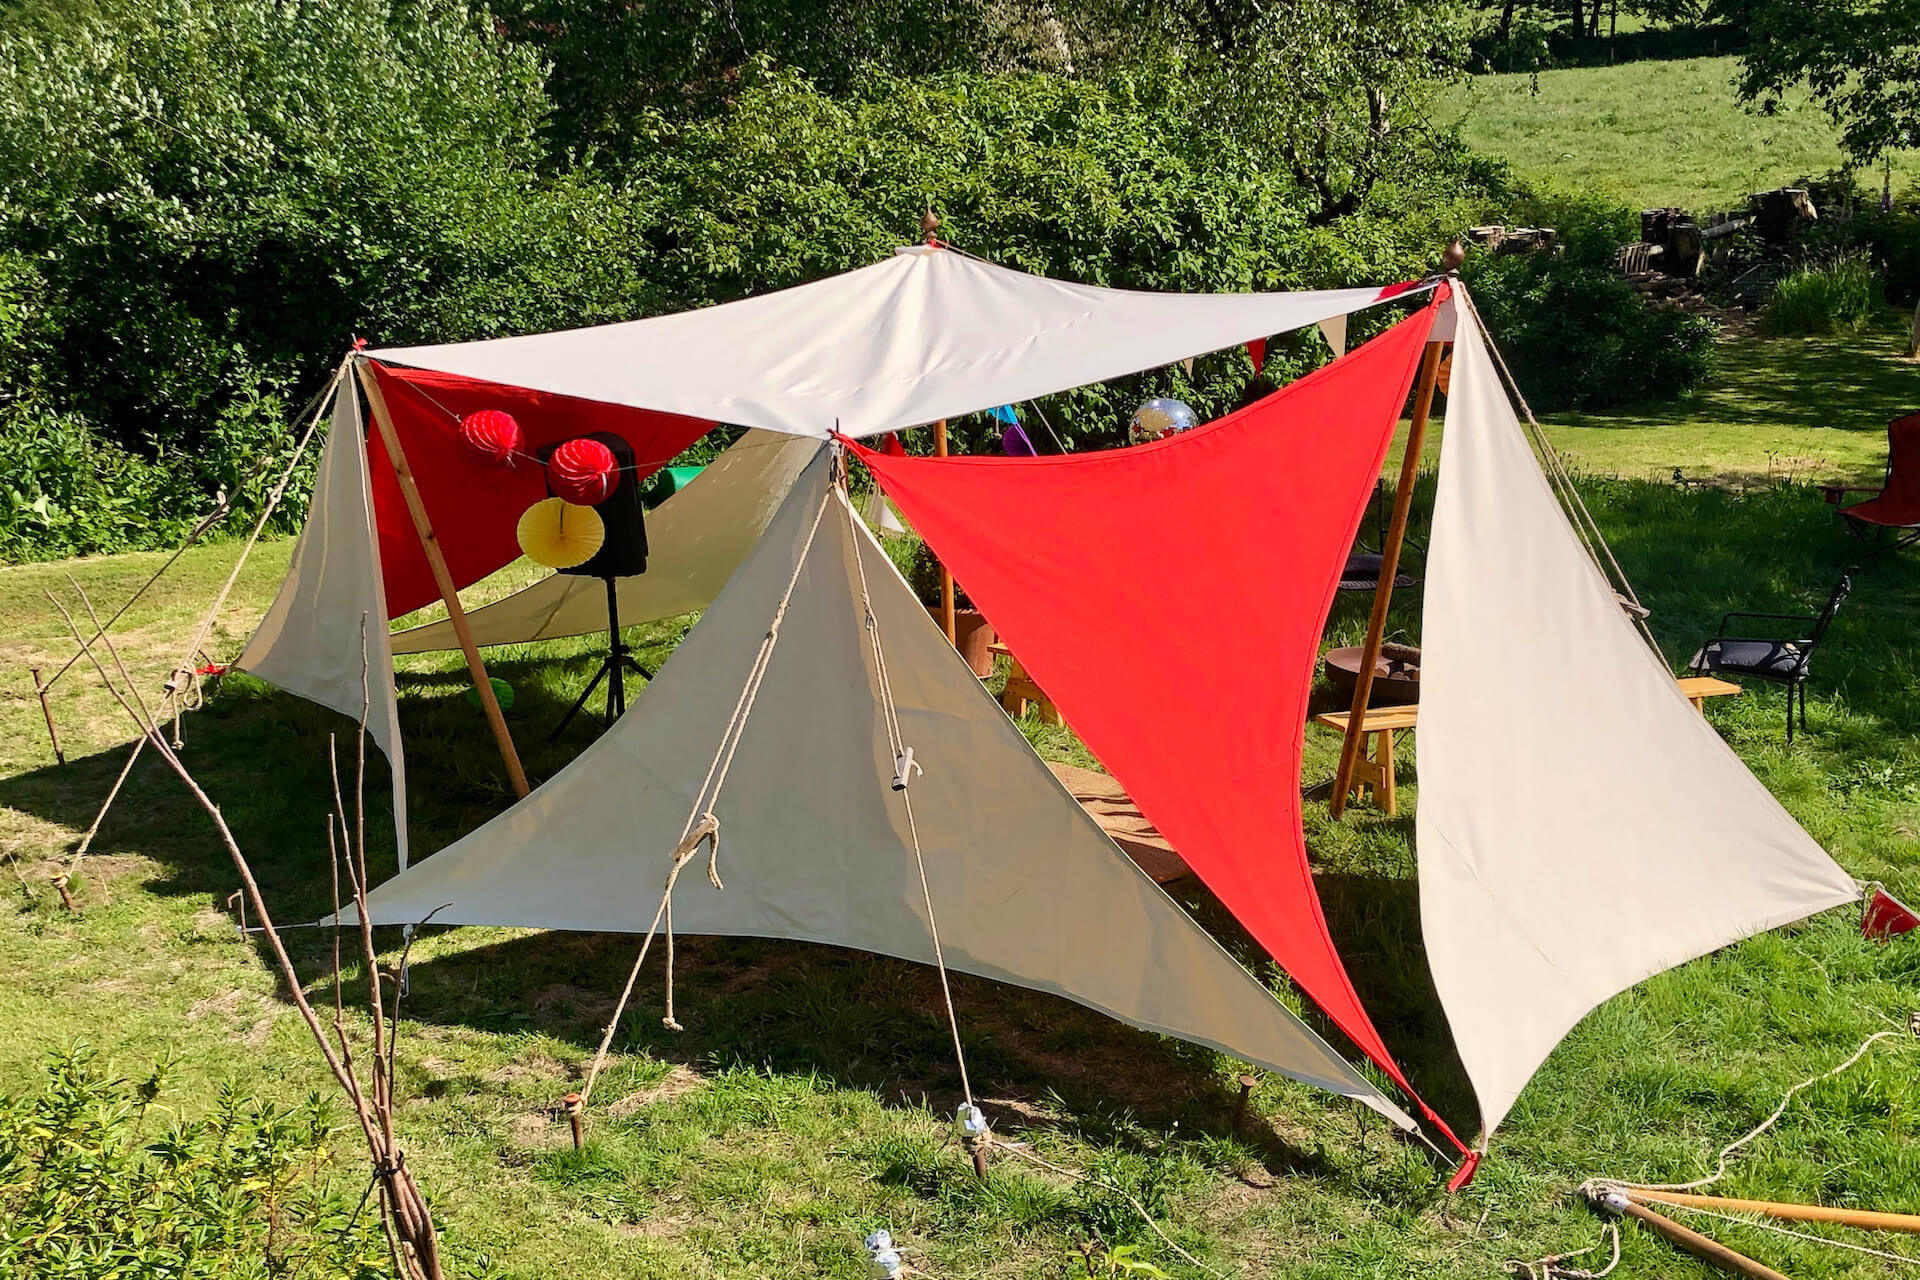 A group of shade sails made in the UK